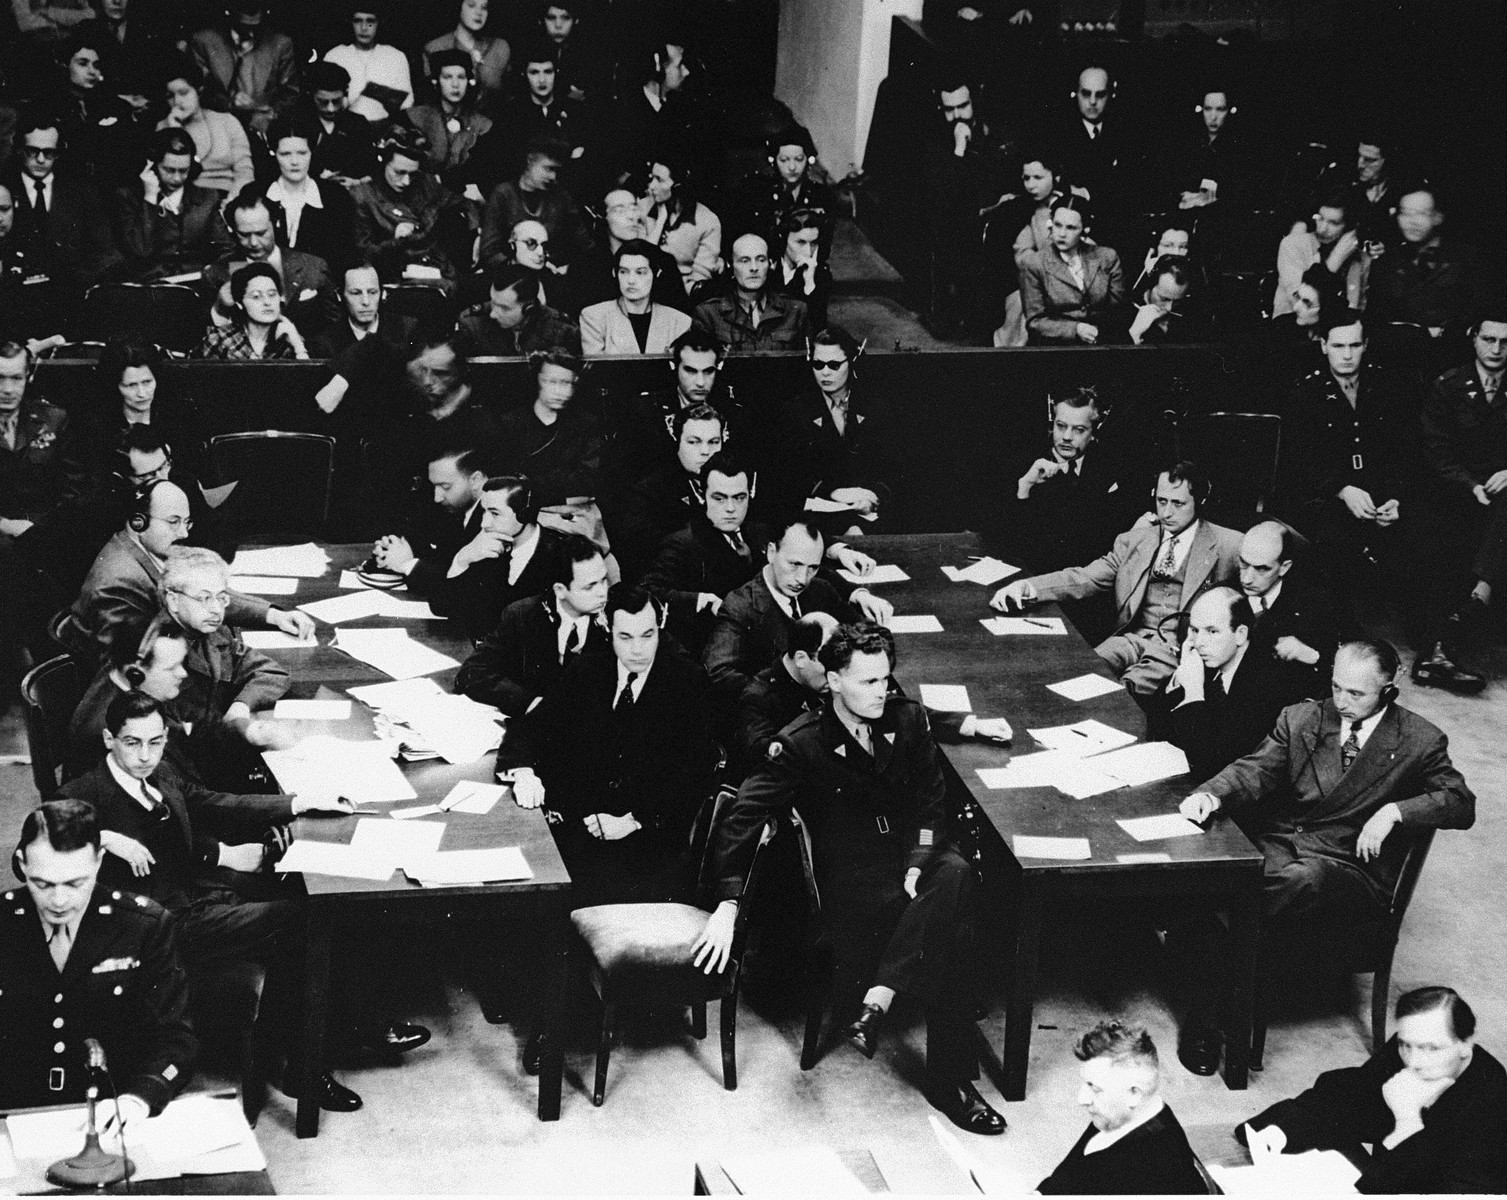 View of the prosecution team during a session of the Medical Case (Doctors') Trial in Nuremberg.    Reading the indictment at the podium (bottom left) is Chief of Counsel Brigadier General Telford Taylor.  Also pictured is Jack W.  Robbins (seated at the left table, second man from the right, facing right).  Seated at the left table, on the left side, from front to back: James M. McHaney, Alexander G. Hardy, Arnost Horlik-Hochwald, and Dr. Leo Alexander.